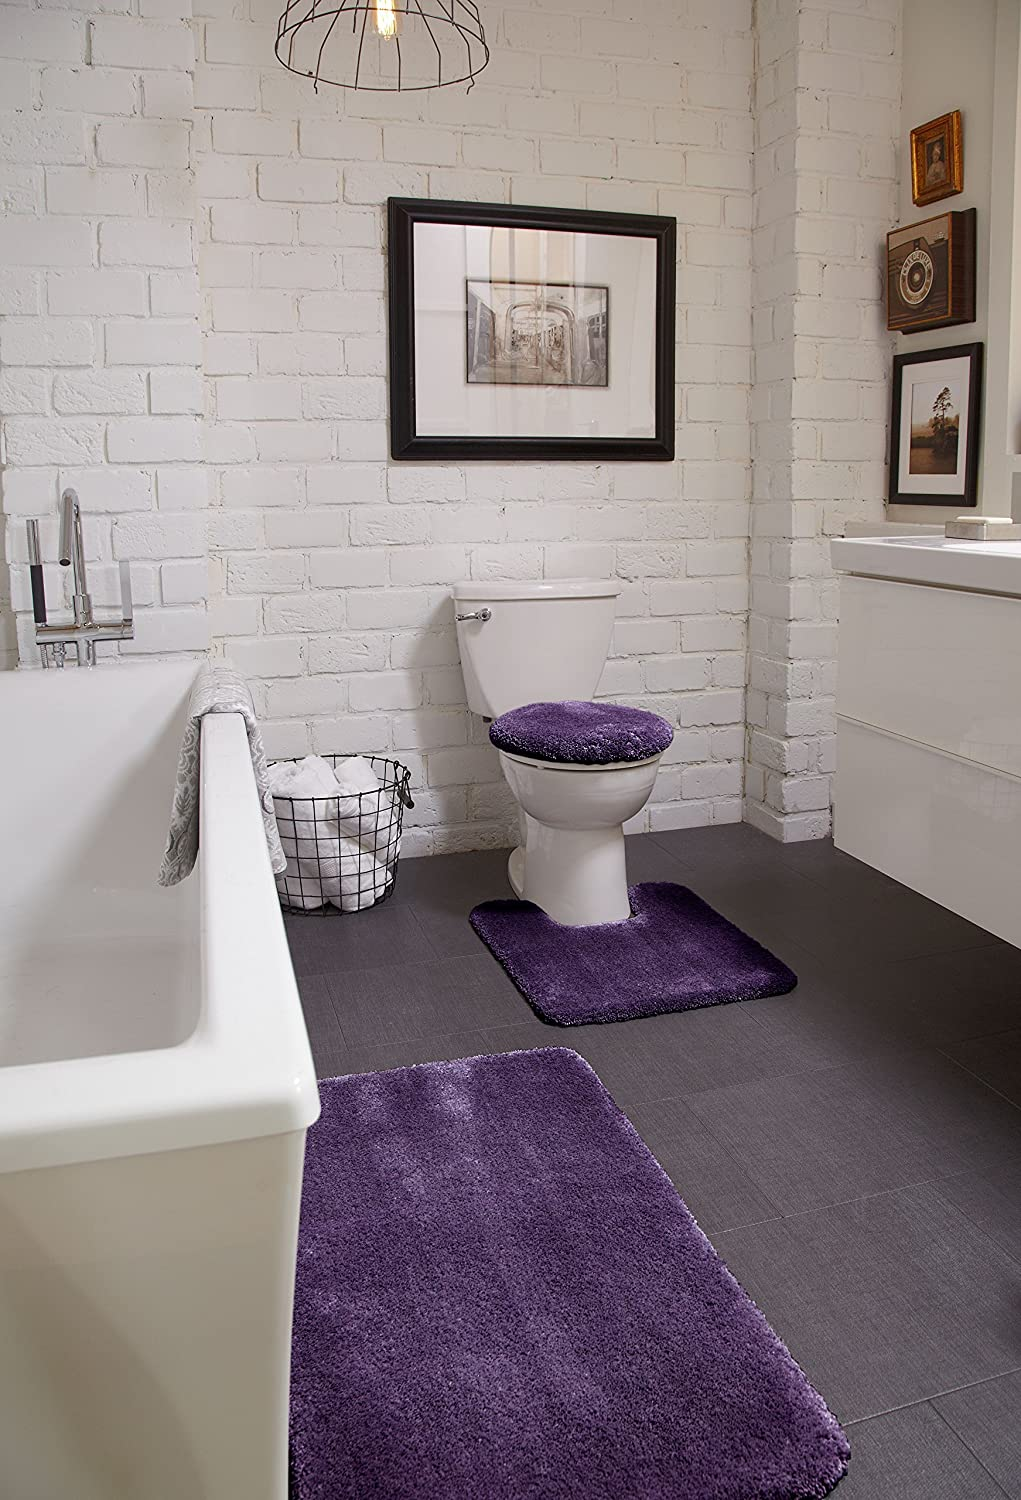 STAINMASTER TruSoft Luxurious Contour Bath Rug, 20-By-24 Sugar Plum